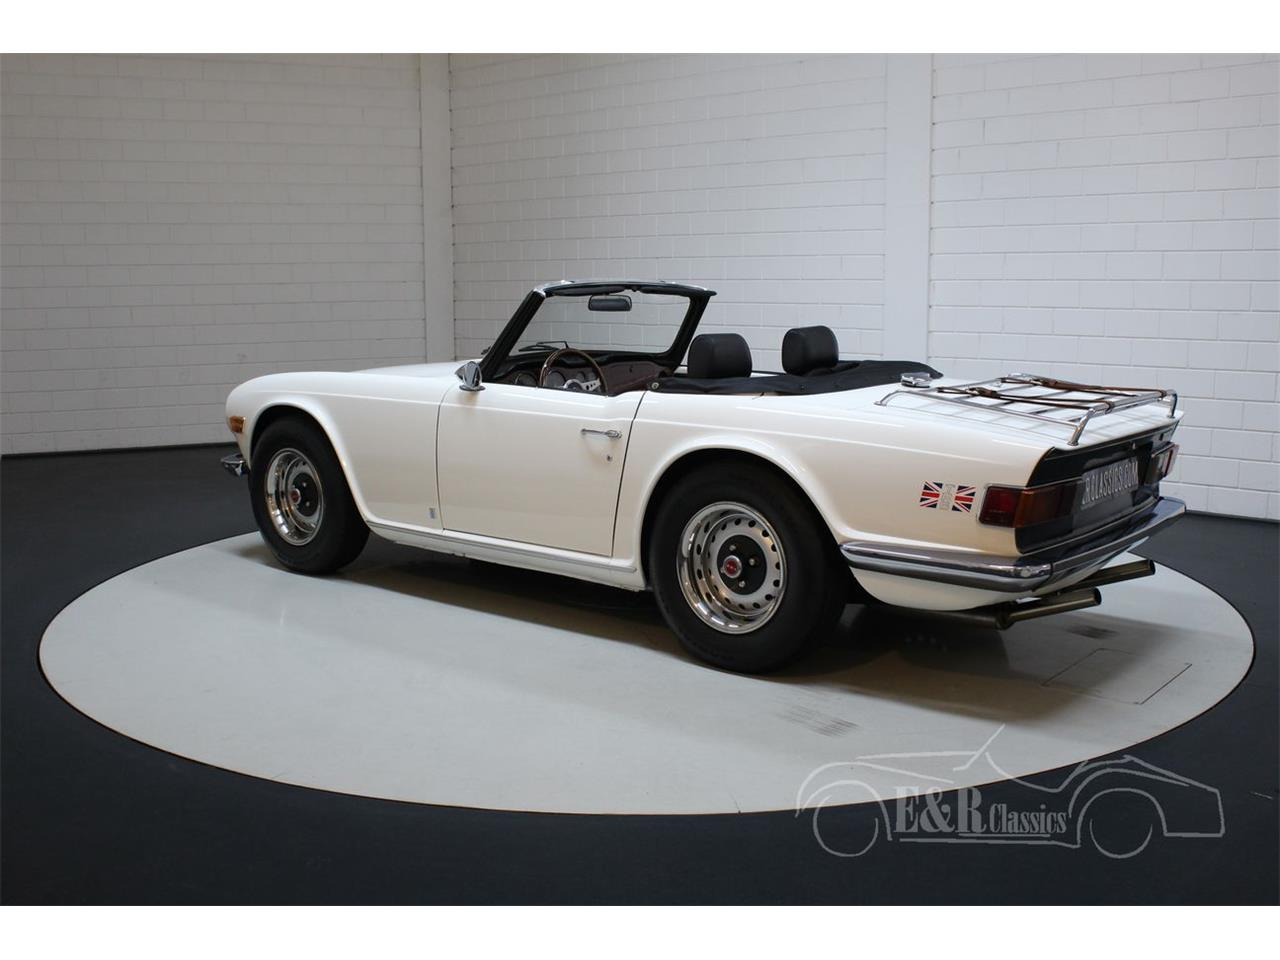 1973 Triumph TR6 (CC-1336939) for sale in Waalwijk, Noord-Brabant